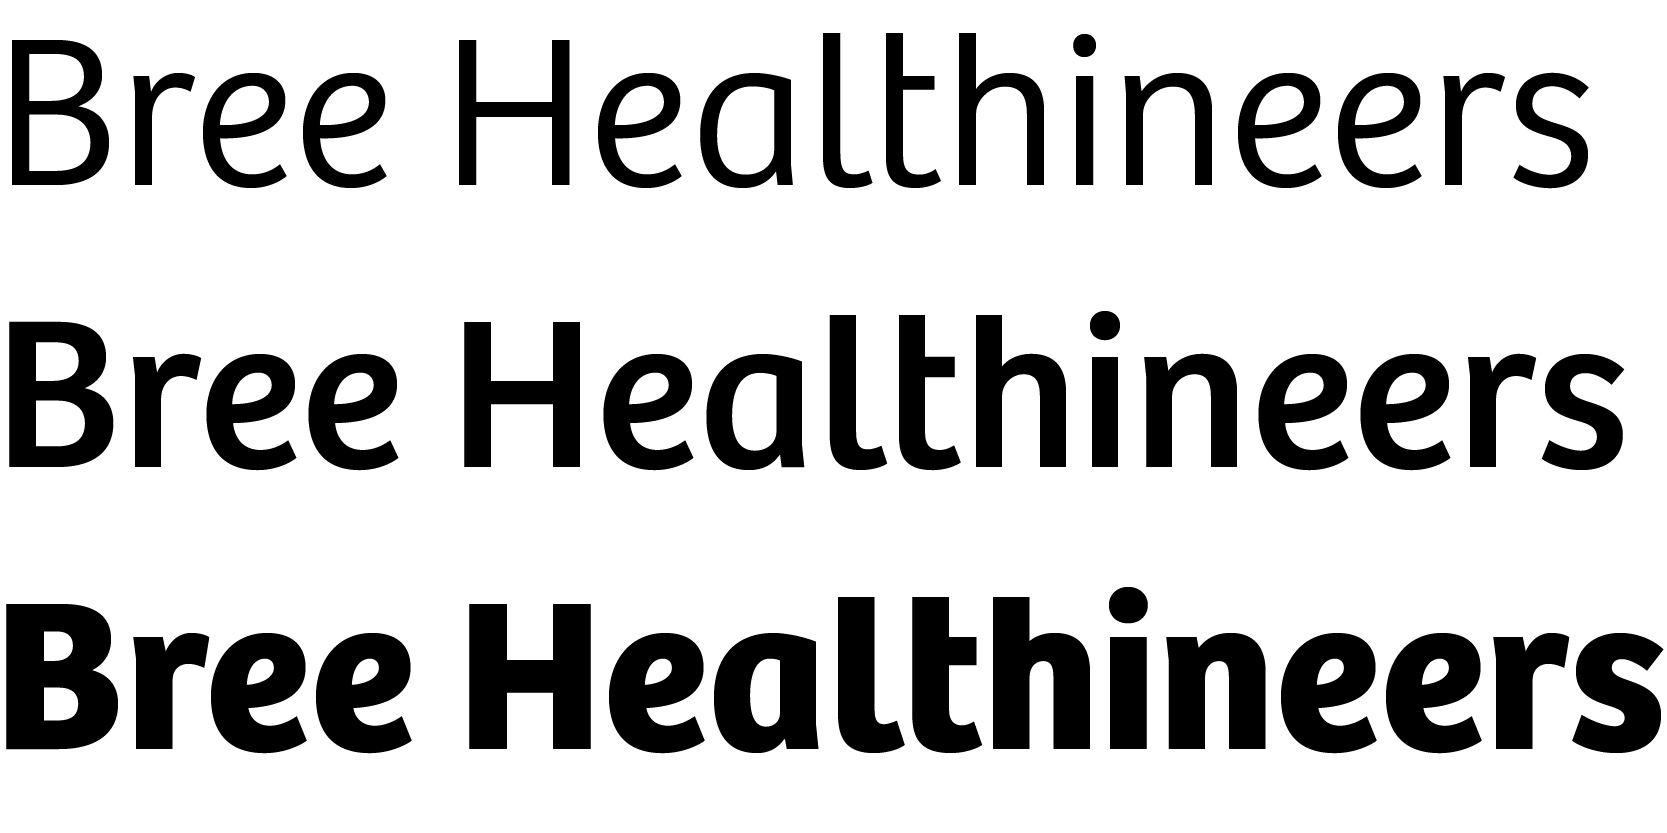 Siemens Healthineers Typetogether